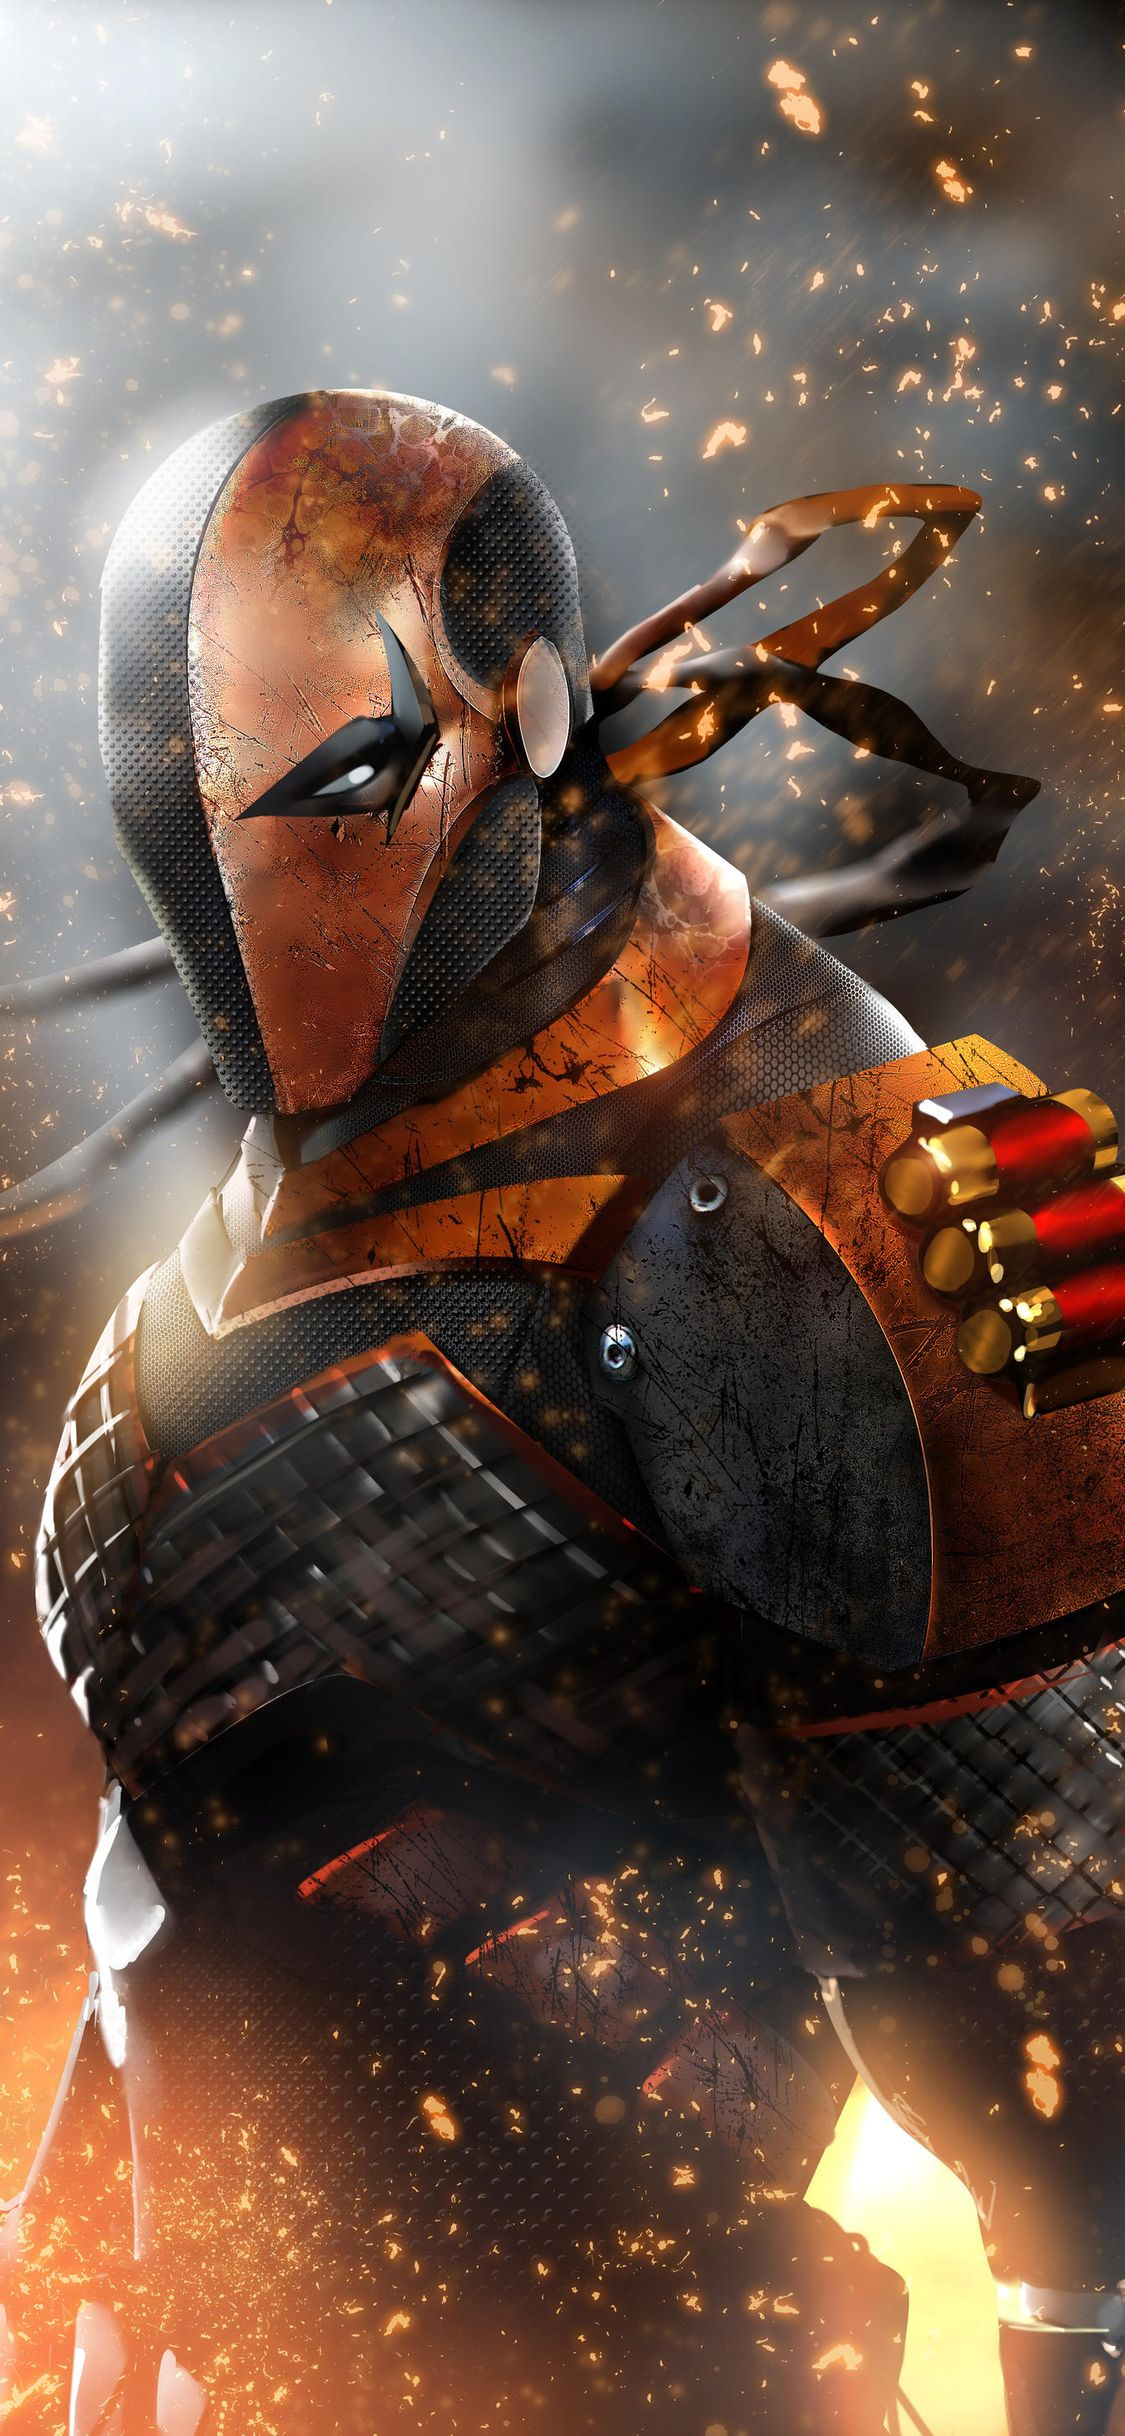 1125x2436 Deathstroke New Arts Iphone Xs Iphone 10 Iphone X Hd 4k Wallpapers Images Backgrounds Photos And Pictures Deathstroke Deathstroke Comics Comic Art